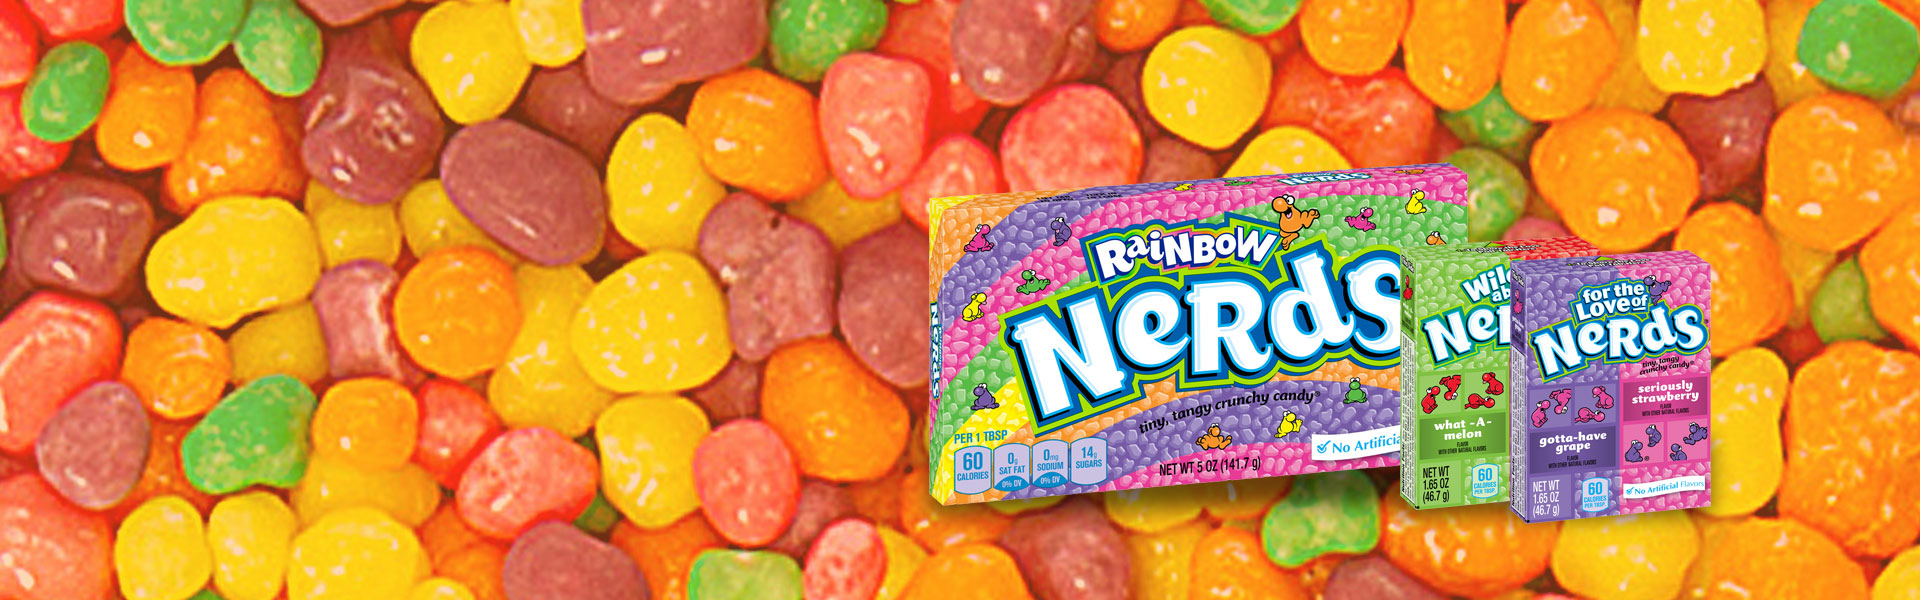 Wonka Nerds Rainbow, Strawberry Grape and mor